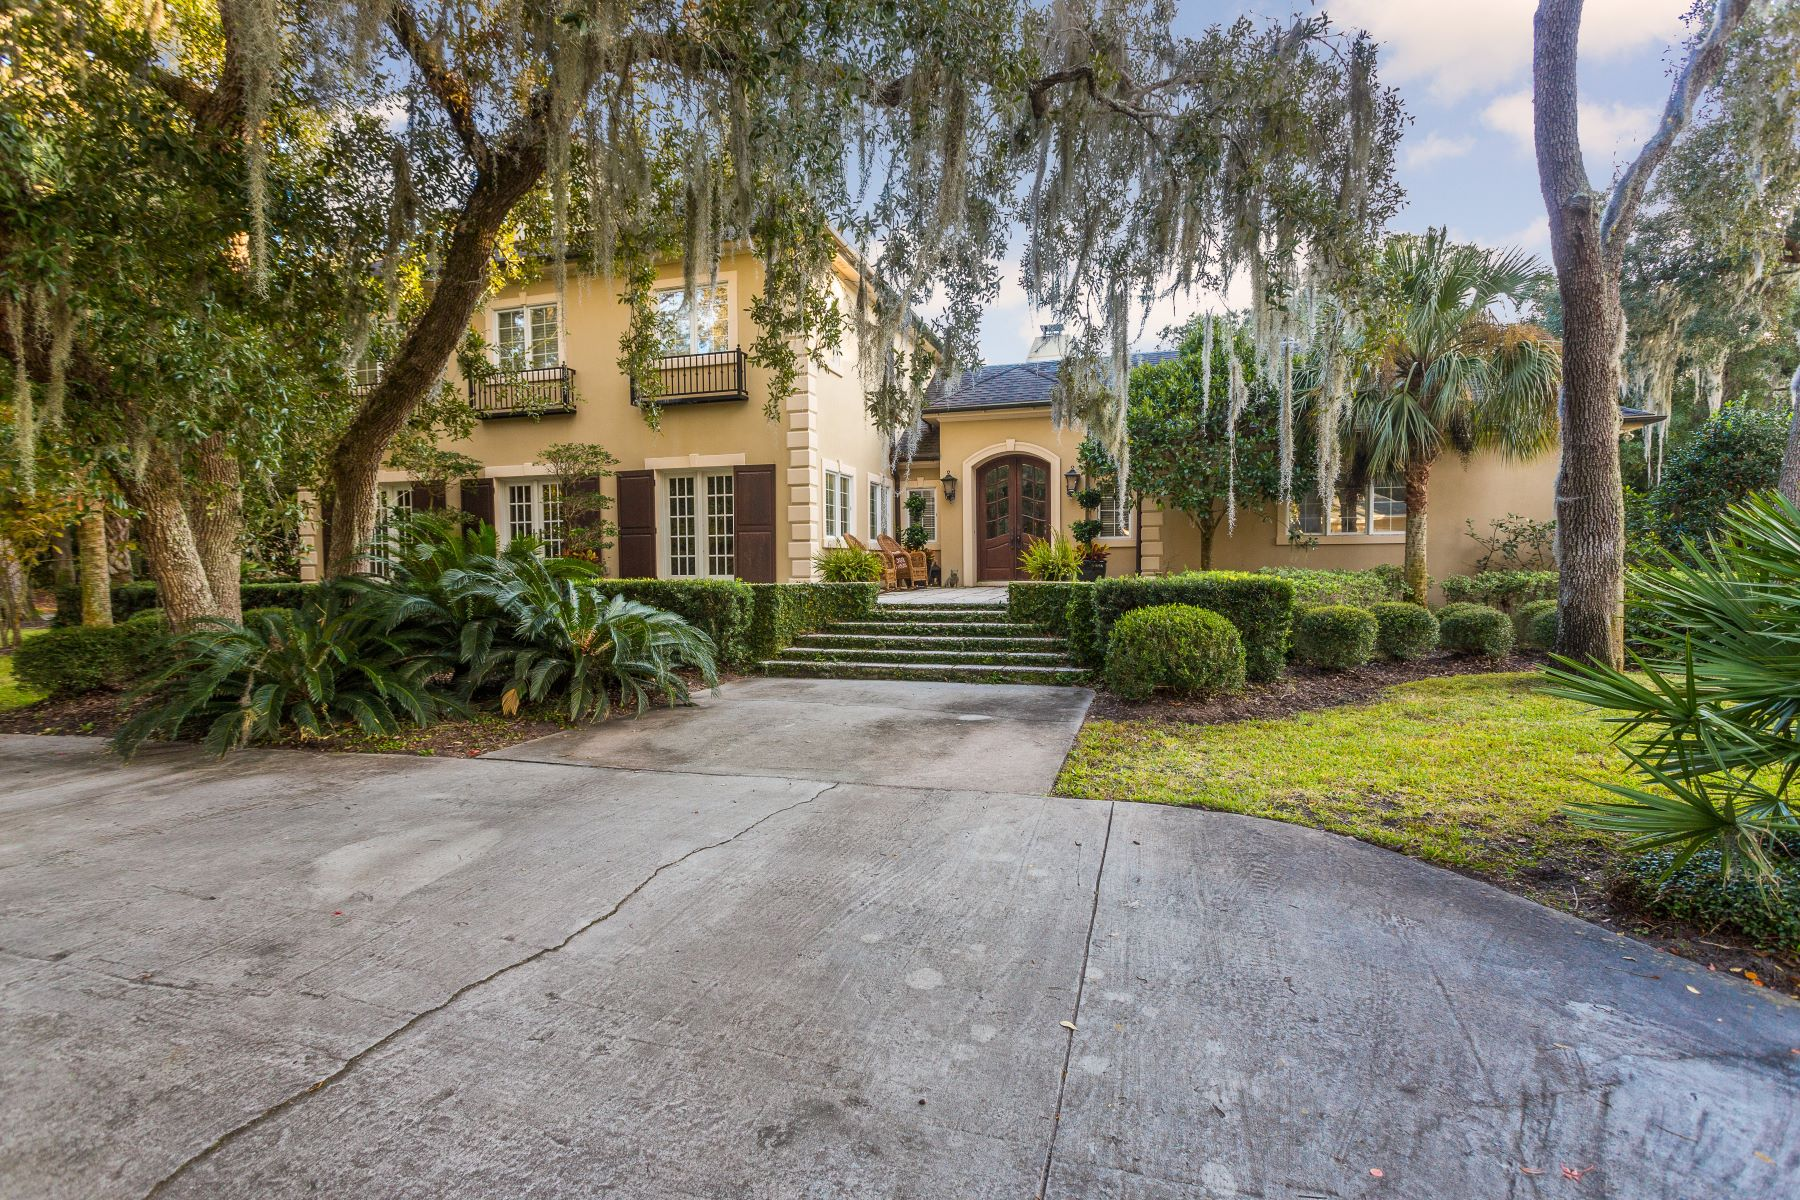 Single Family Homes for Sale at 307 West 50th Streert 307 W 50th Street Cottage 402 Sea Island, Georgia 31561 United States